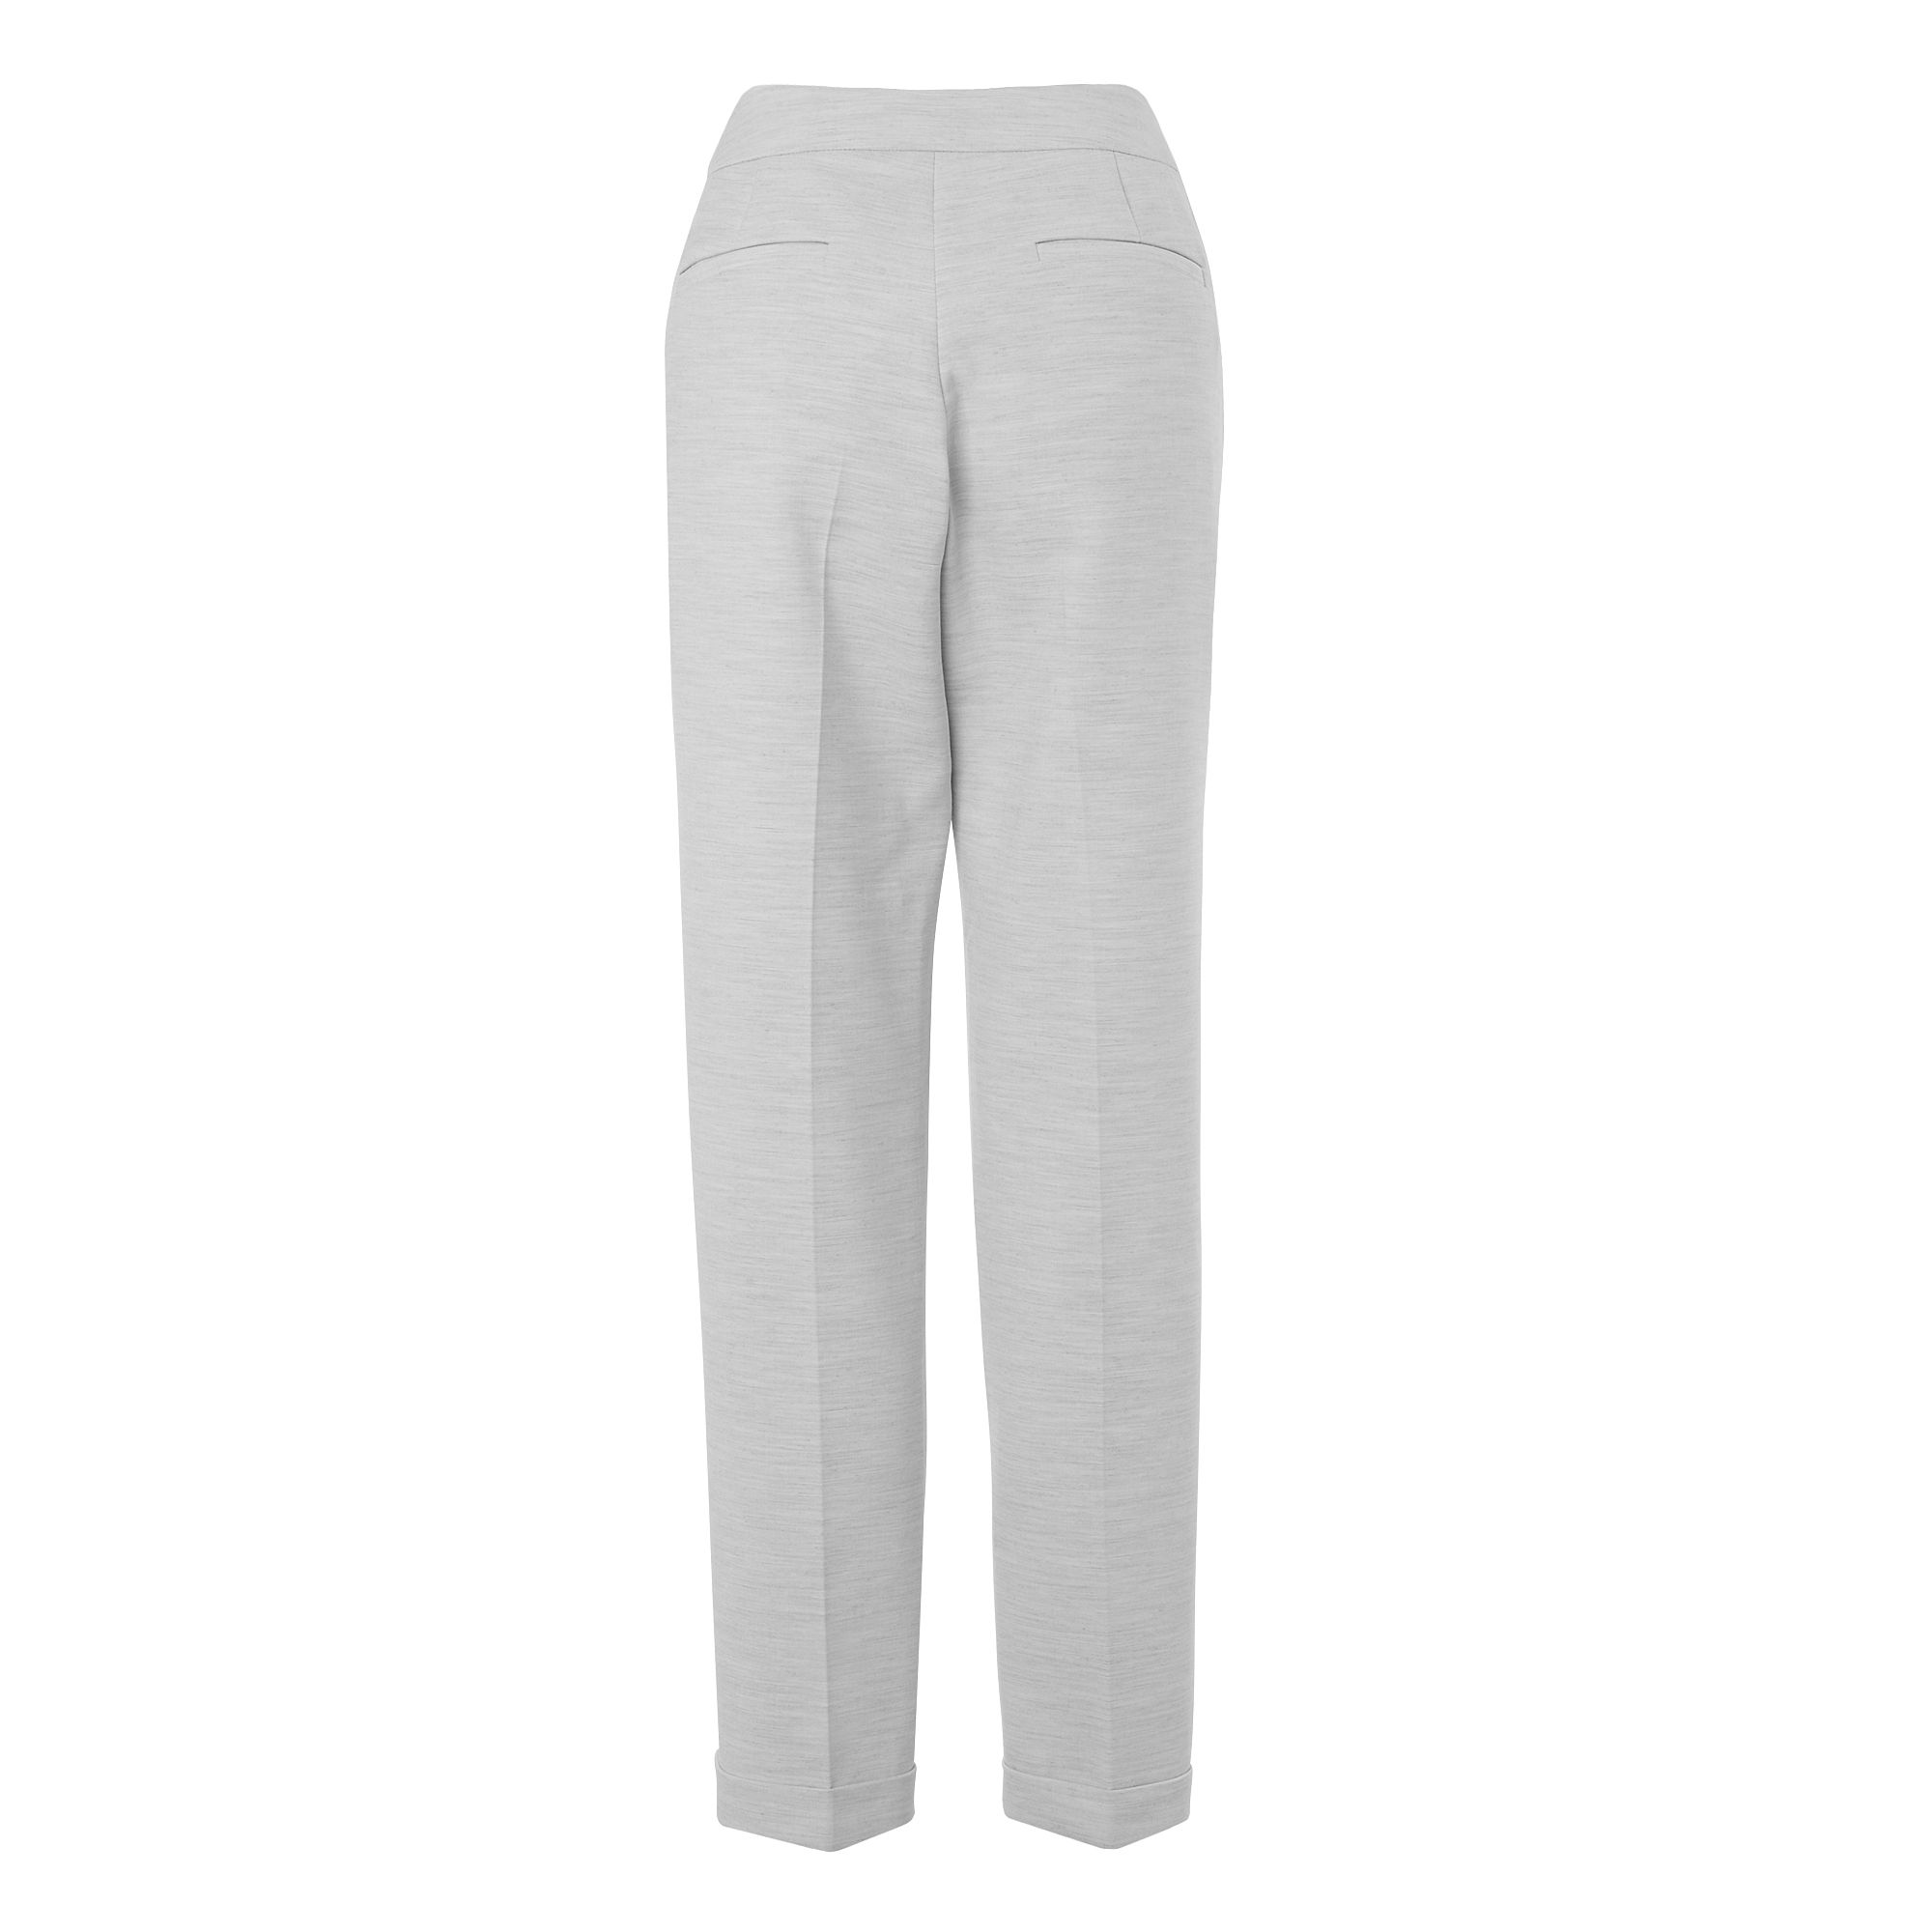 Handa tapered turn up trousers